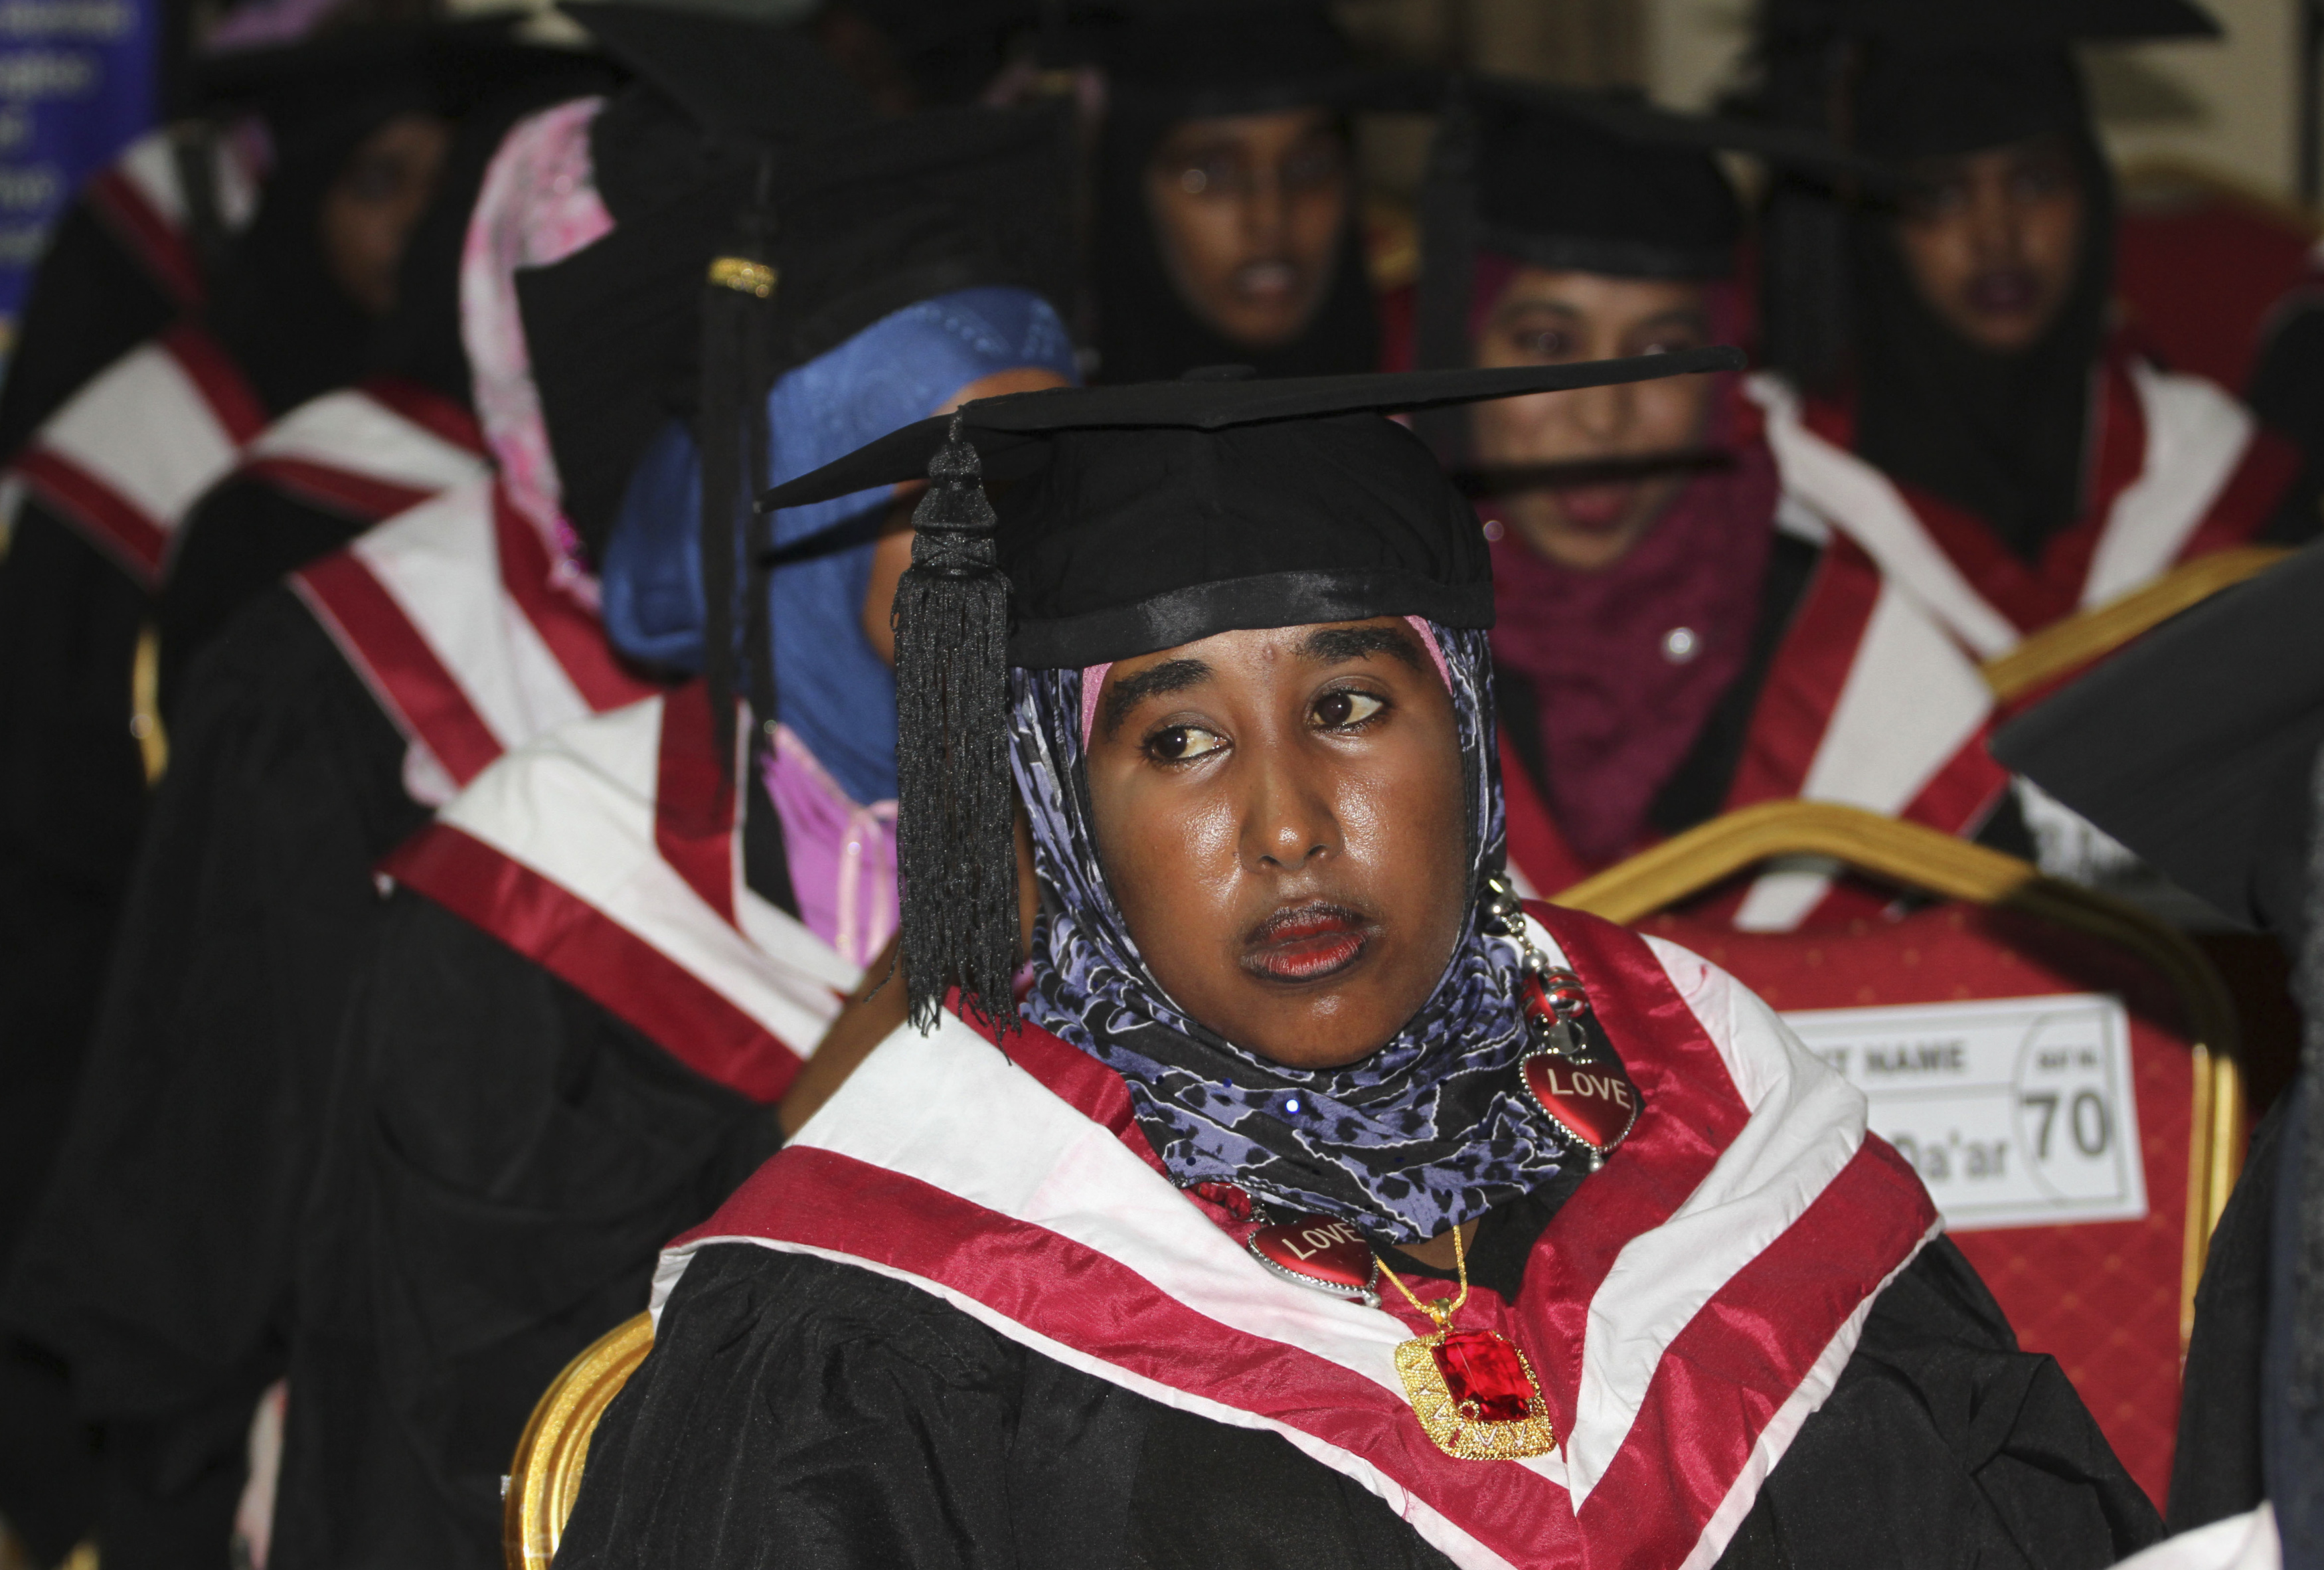 A girl looks on as she attends her graduation ceremony, along with 600 other students of SIMAD University, in Mogadishu November 29, 2012. REUTERS/Omar Faruk (SOMALIA - Tags: EDUCATION SOCIETY) - RTR3B0RK